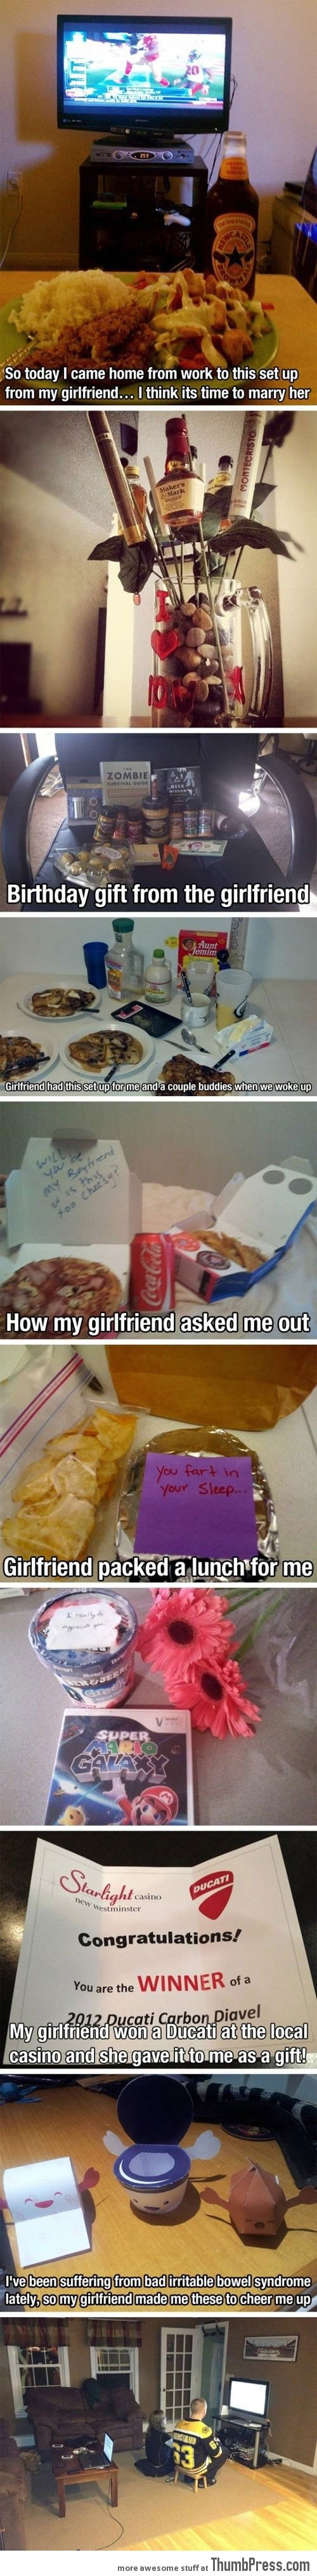 You know you should marry your girlfriend when...